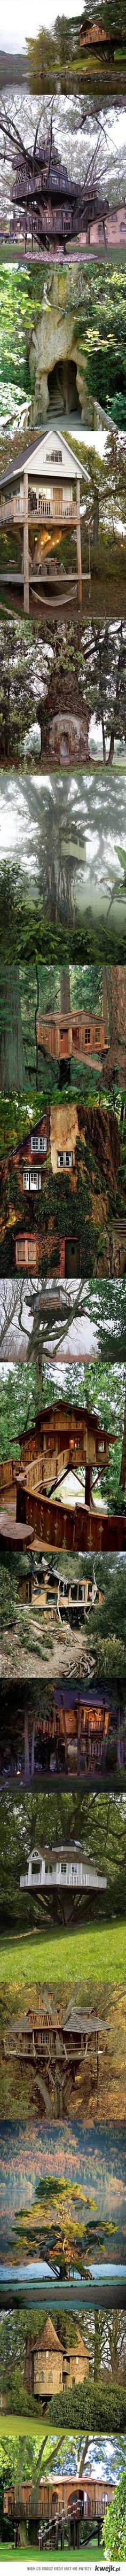 tree houses...... It would be so cool to have one like this!